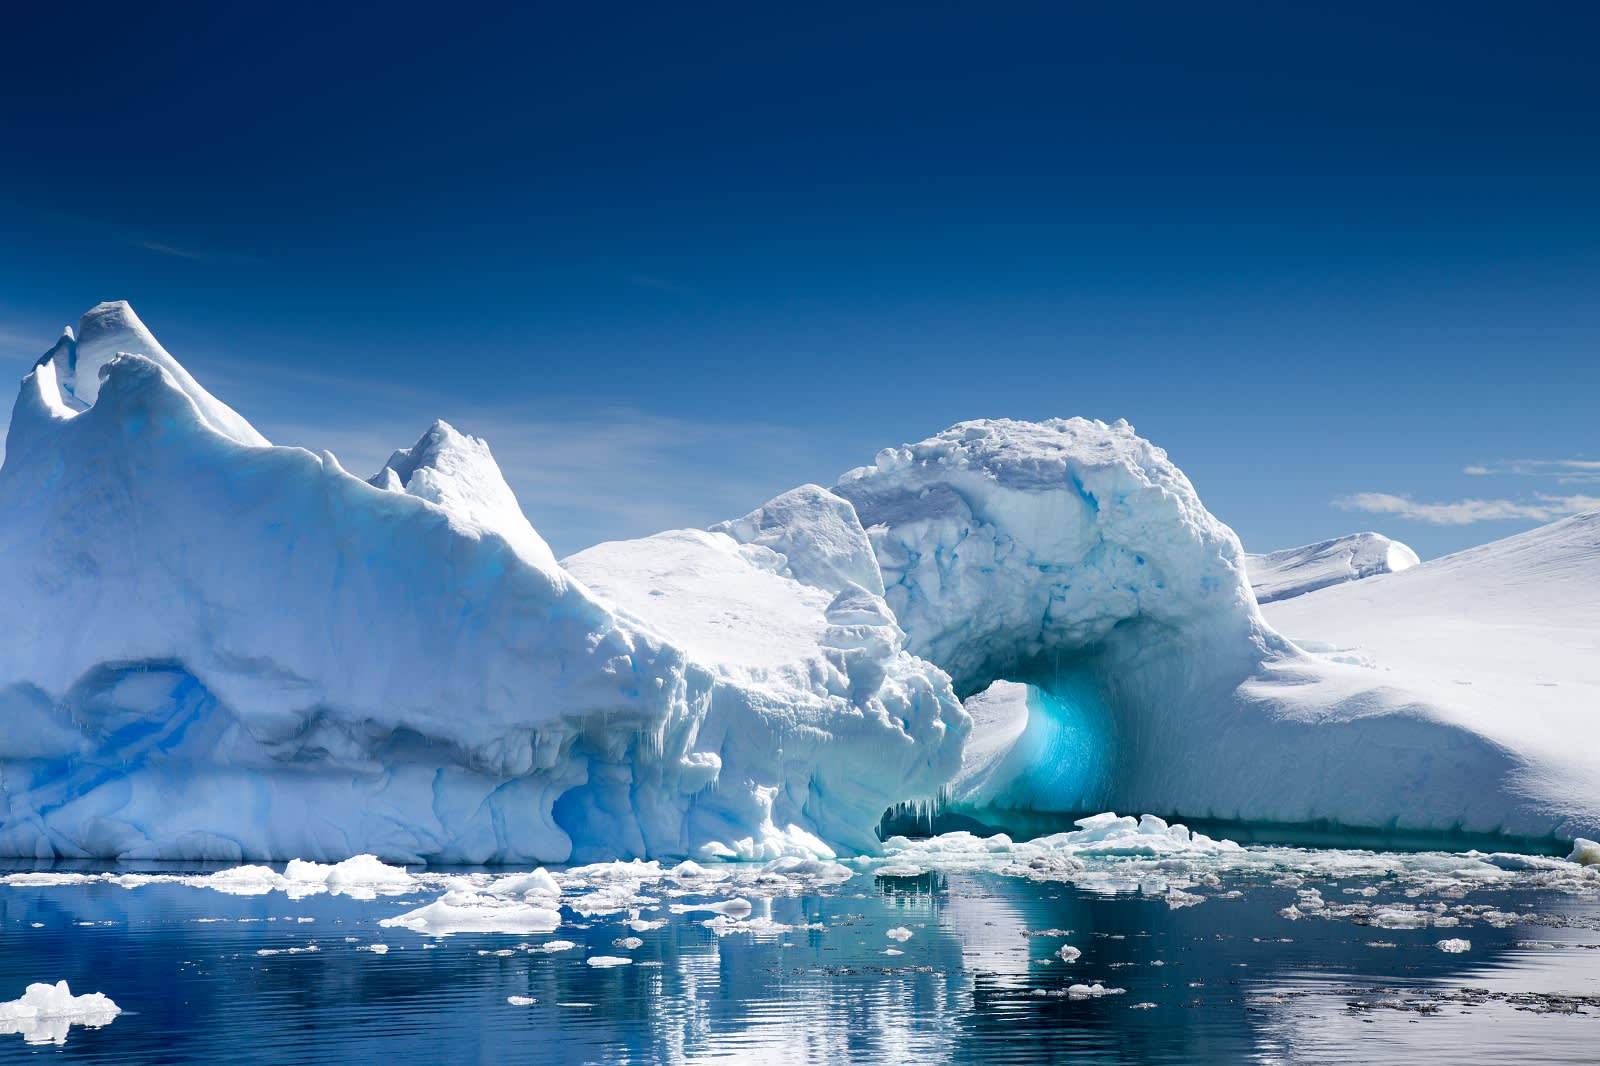 Antarctica is known for its spectacular icebergs